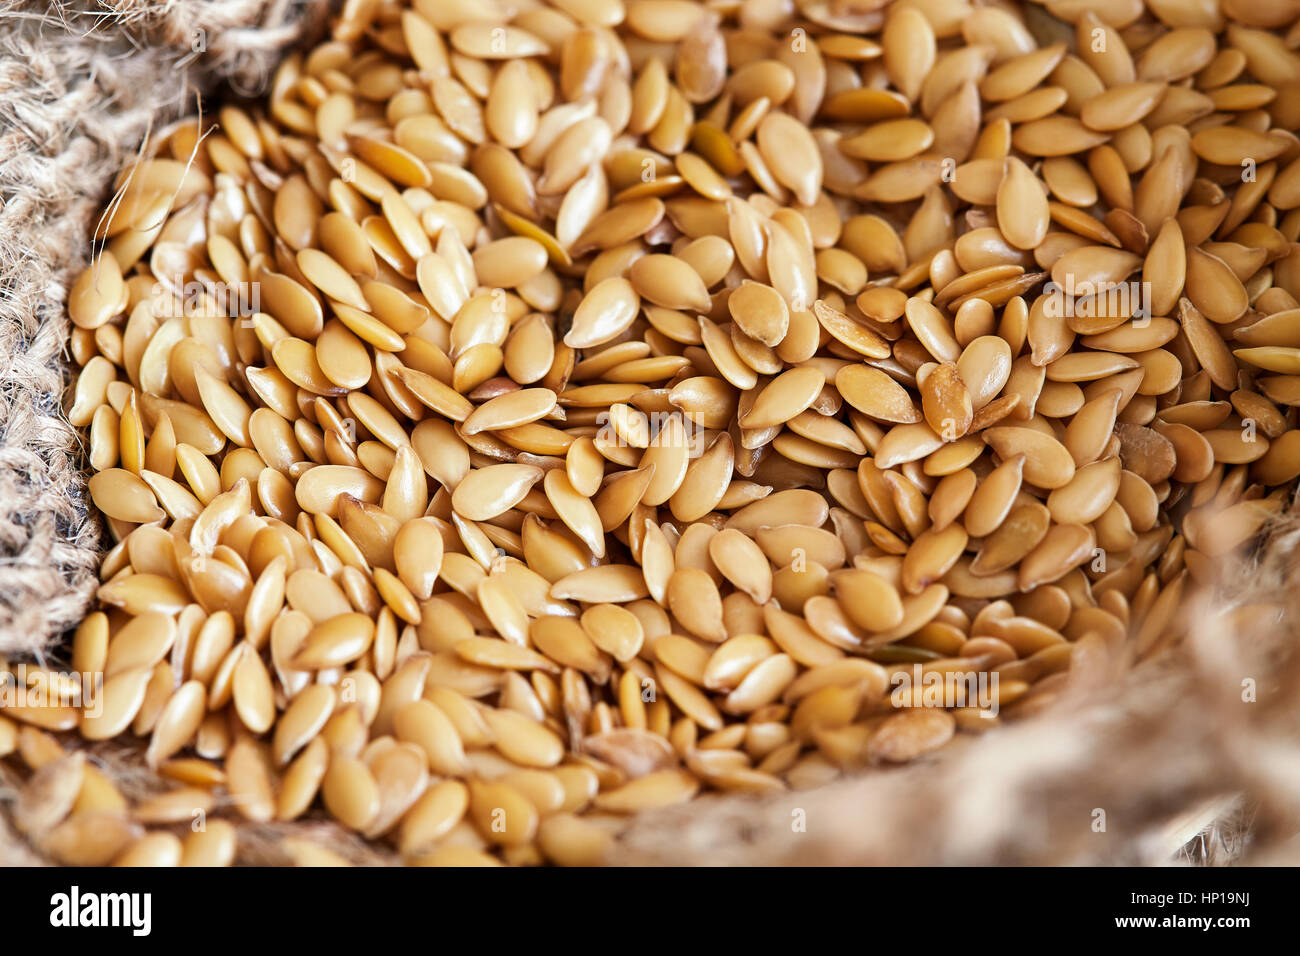 Close-up of golden sesame seeds in burlap bag - Stock Image